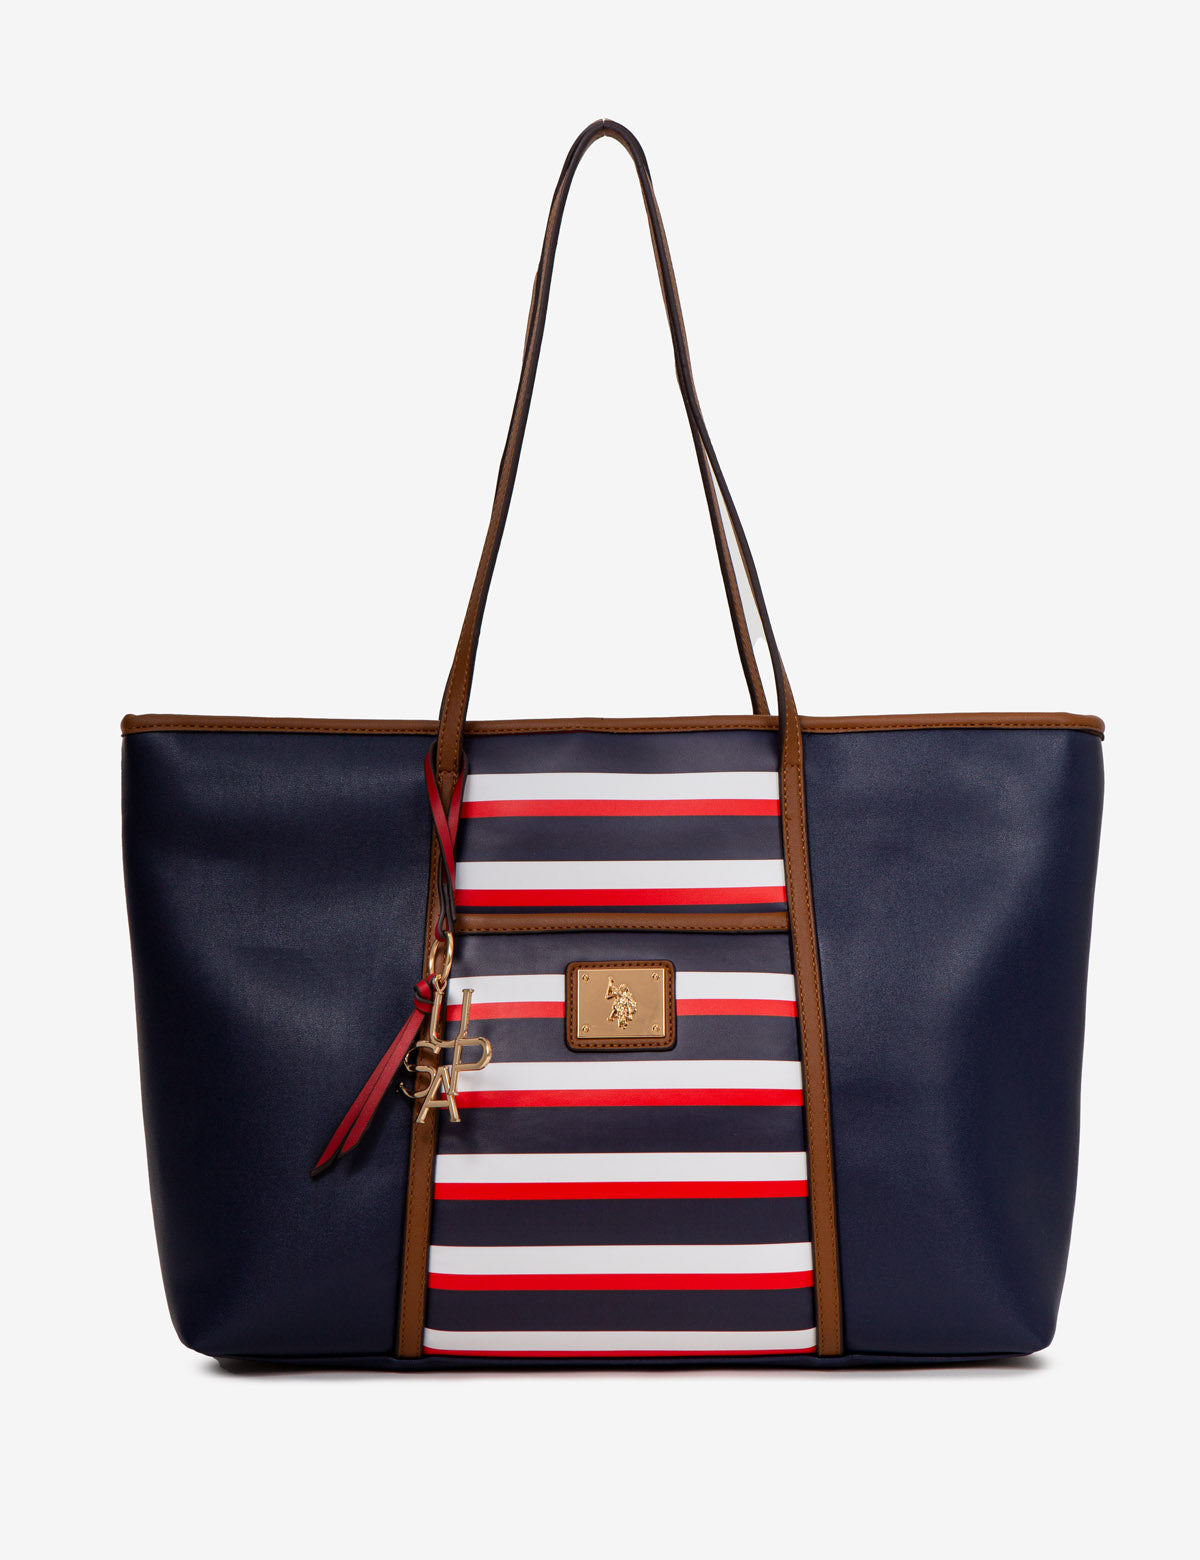 USPA STRIPE TOTE BAG - U.S. Polo Assn.